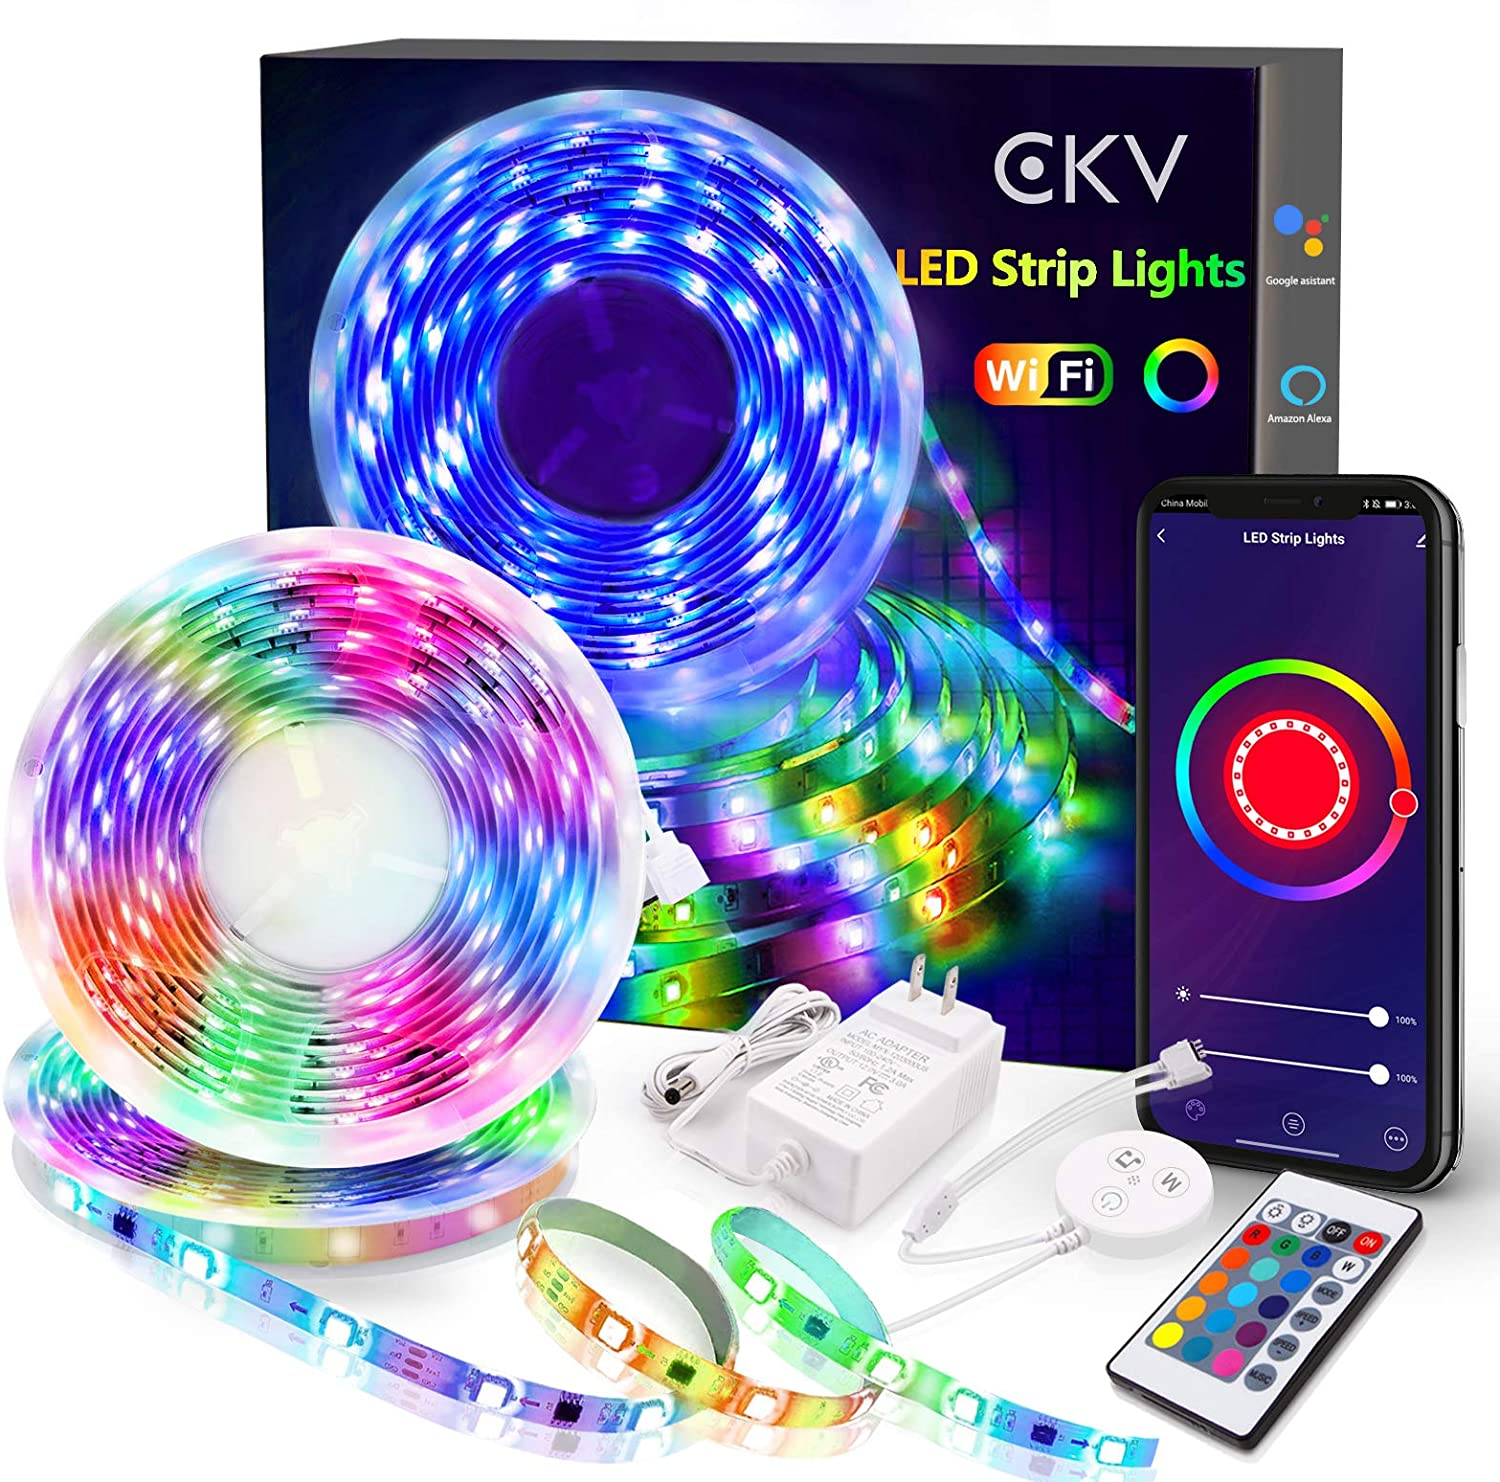 Smart LED Strip Lights 32.8ft - WiFi LED Rope Lights Works with Alexa Echo Google Home, Music Sync SMD 5050 App Control Waterproof RGB Light Strips for Bedroom Kitchen Room TV Party Wall Decorations